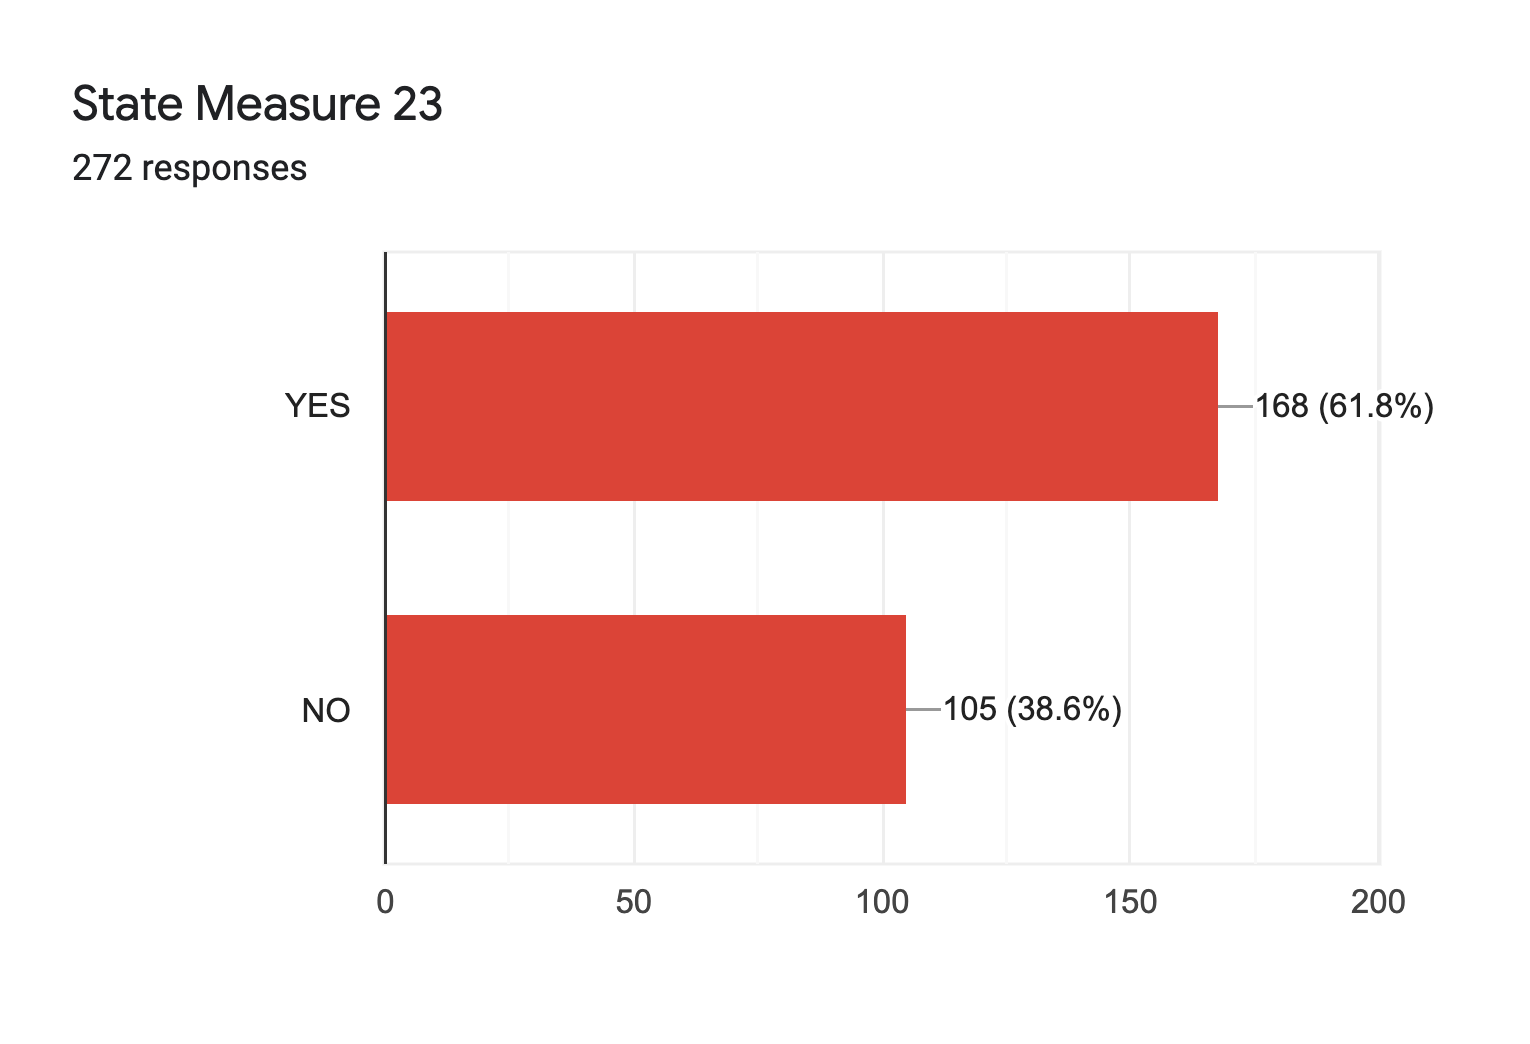 Forms response chart. Question title: State Measure 23. Number of responses: 272 responses.